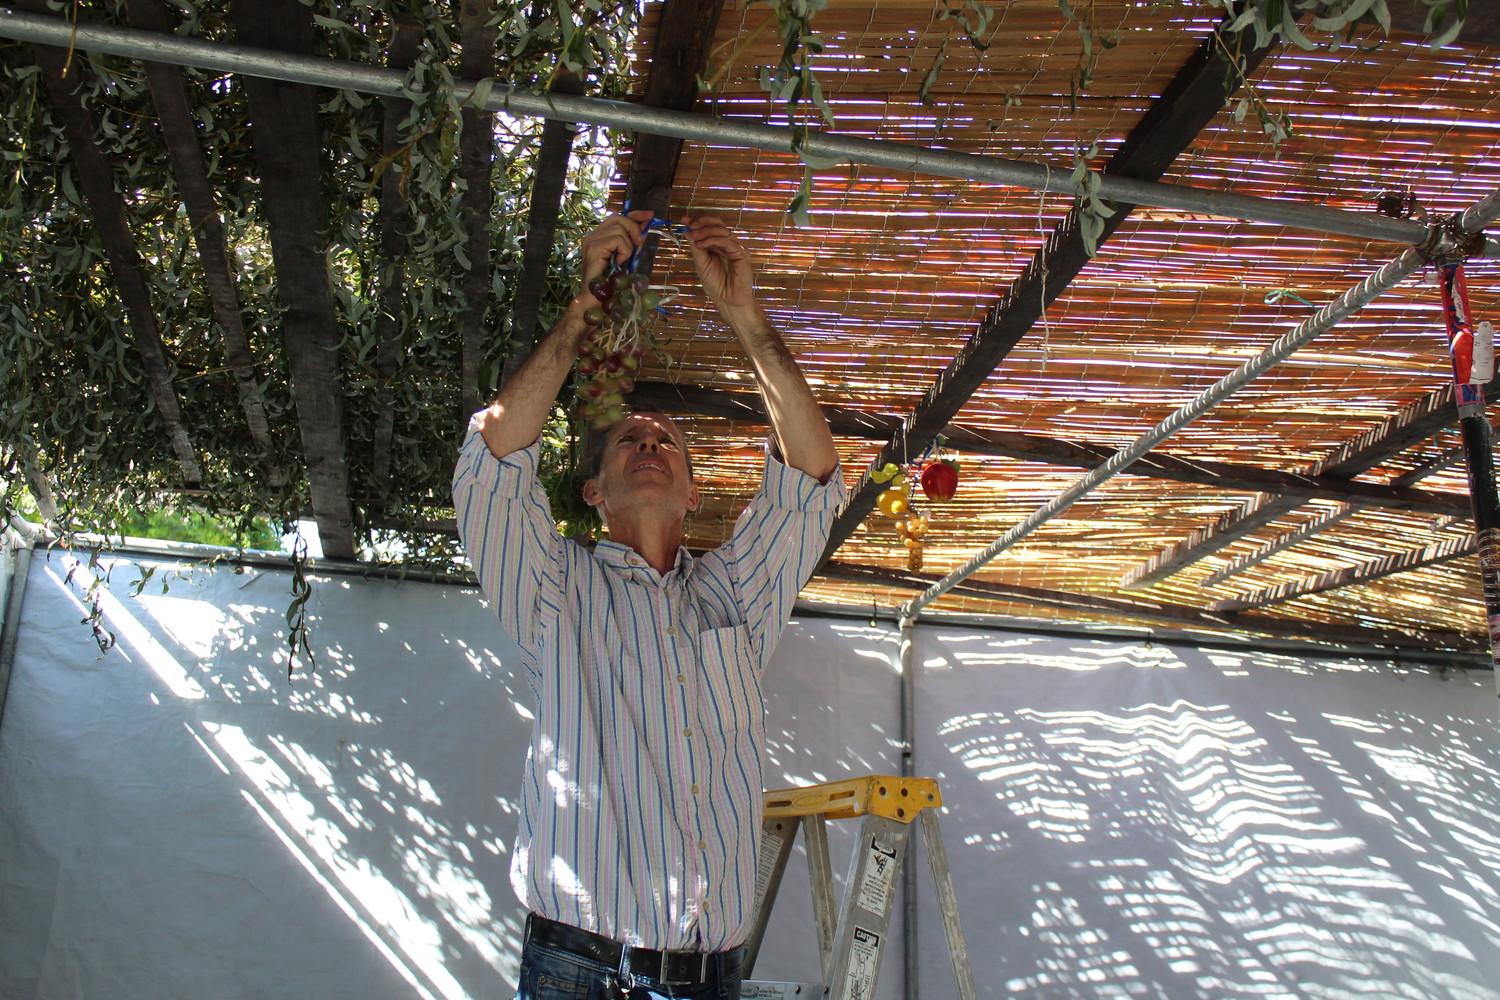 Jose Melosevich hung plastic fruit from the sukkah's ceiling.